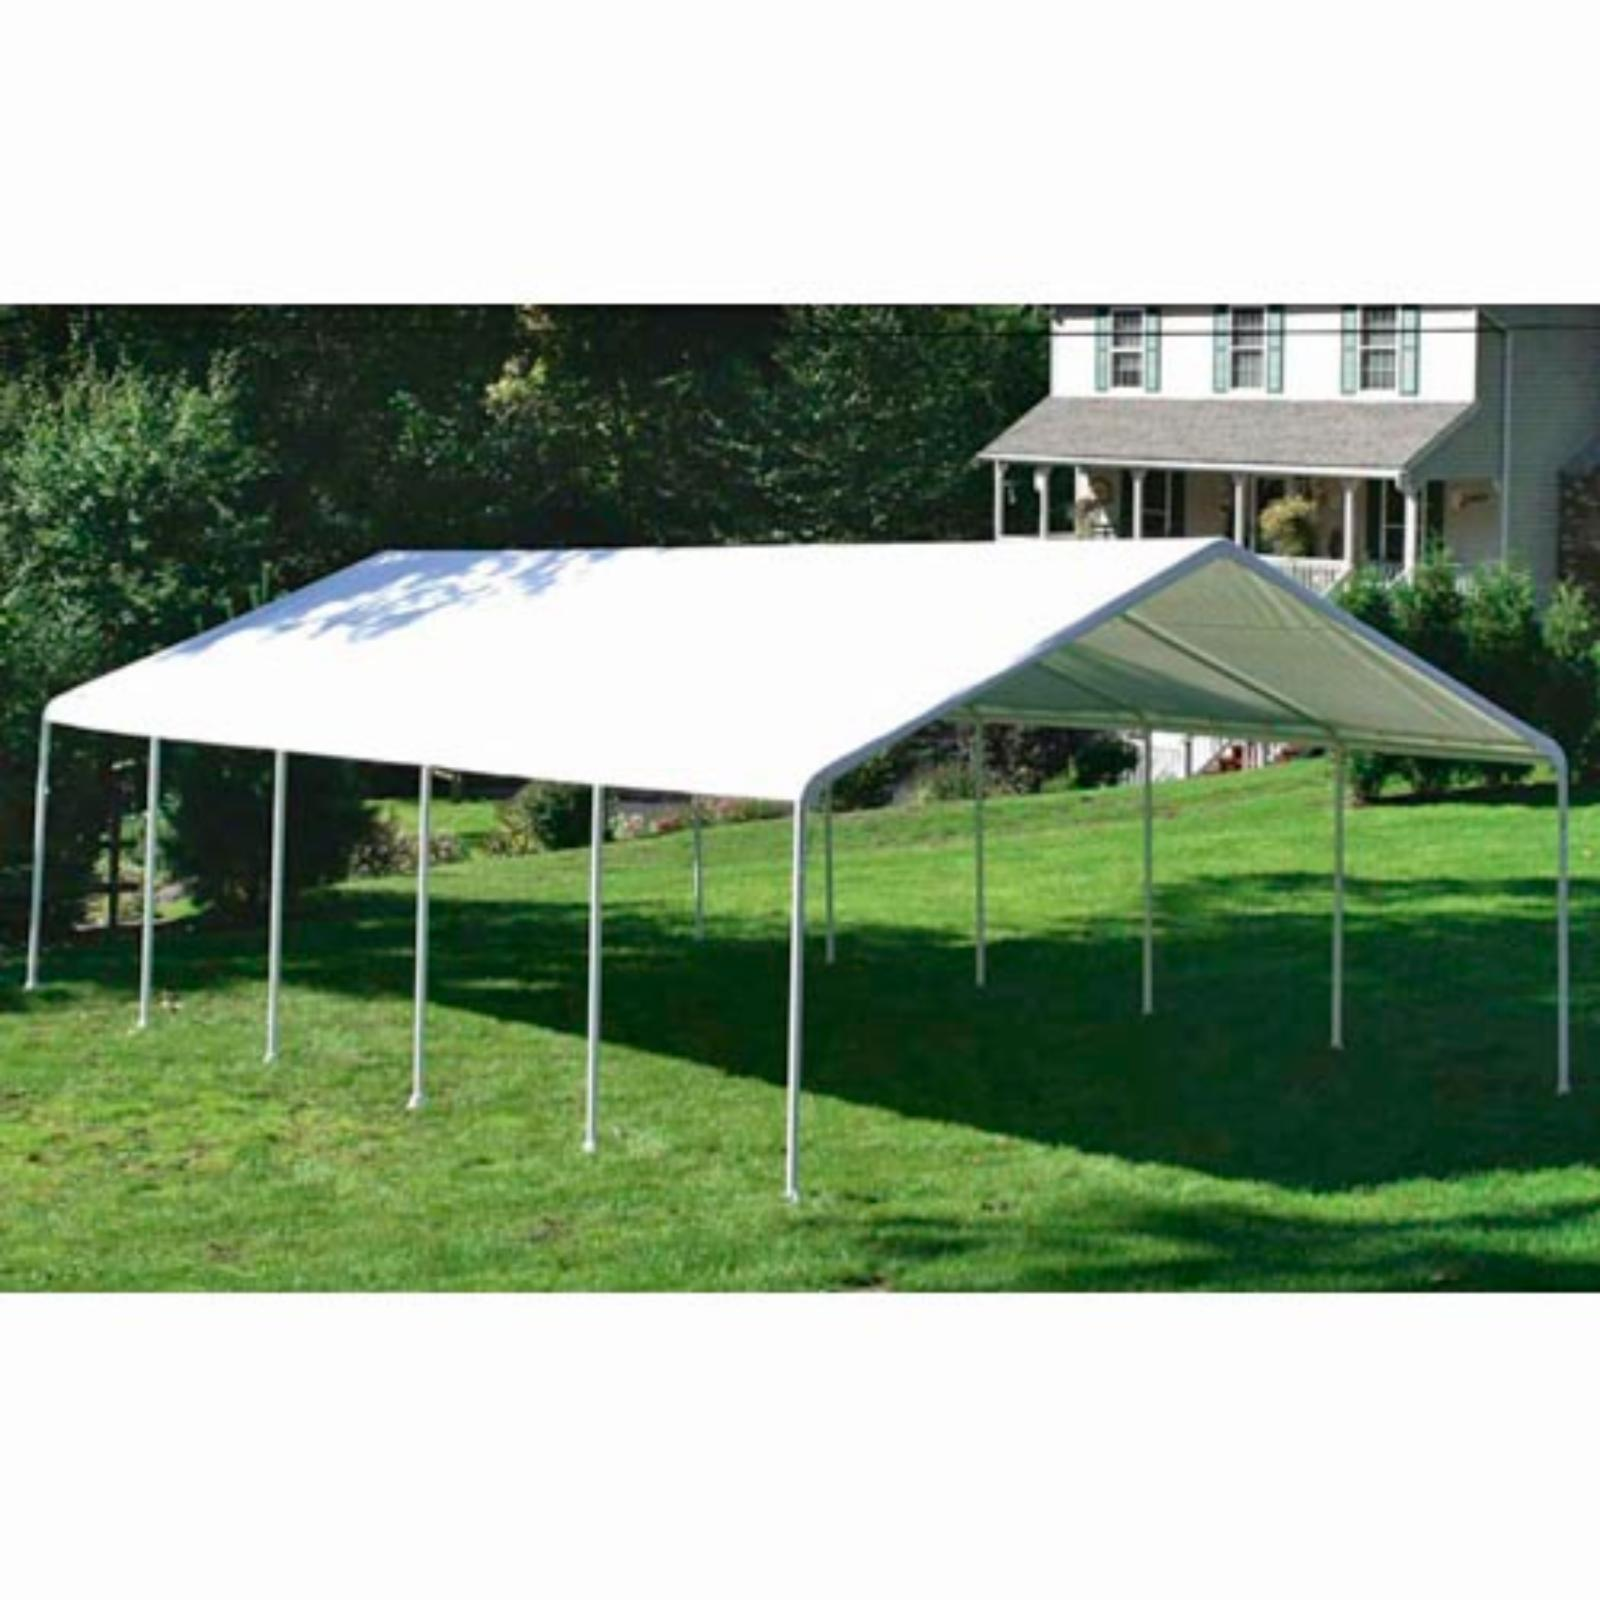 ShelterLogic 18 x 30 ft. Commercial Grade Canopy - 26767